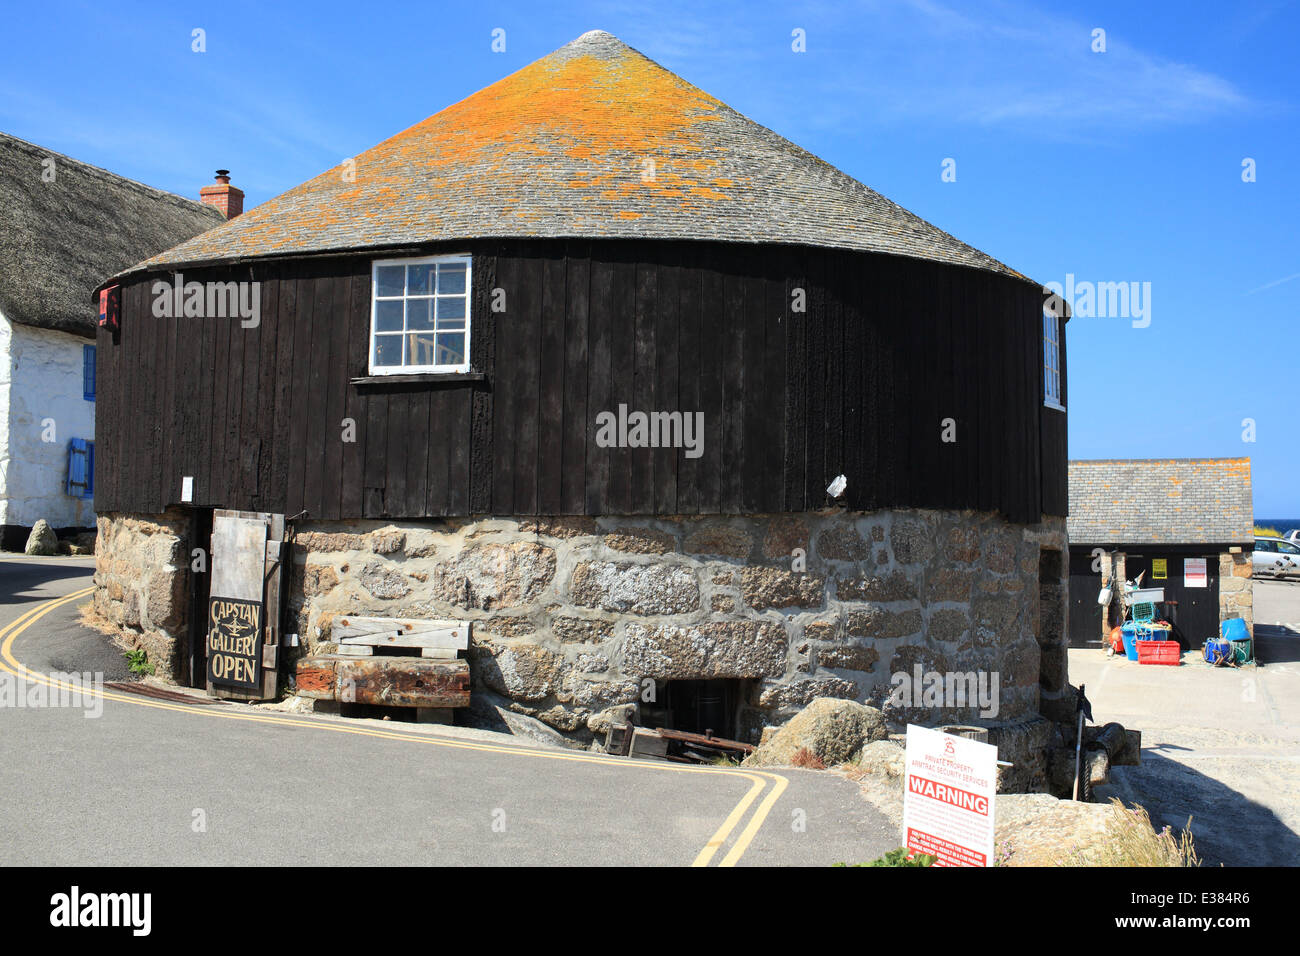 Round building, Sennen Cove, West Cornwall, England, UK - Stock Image